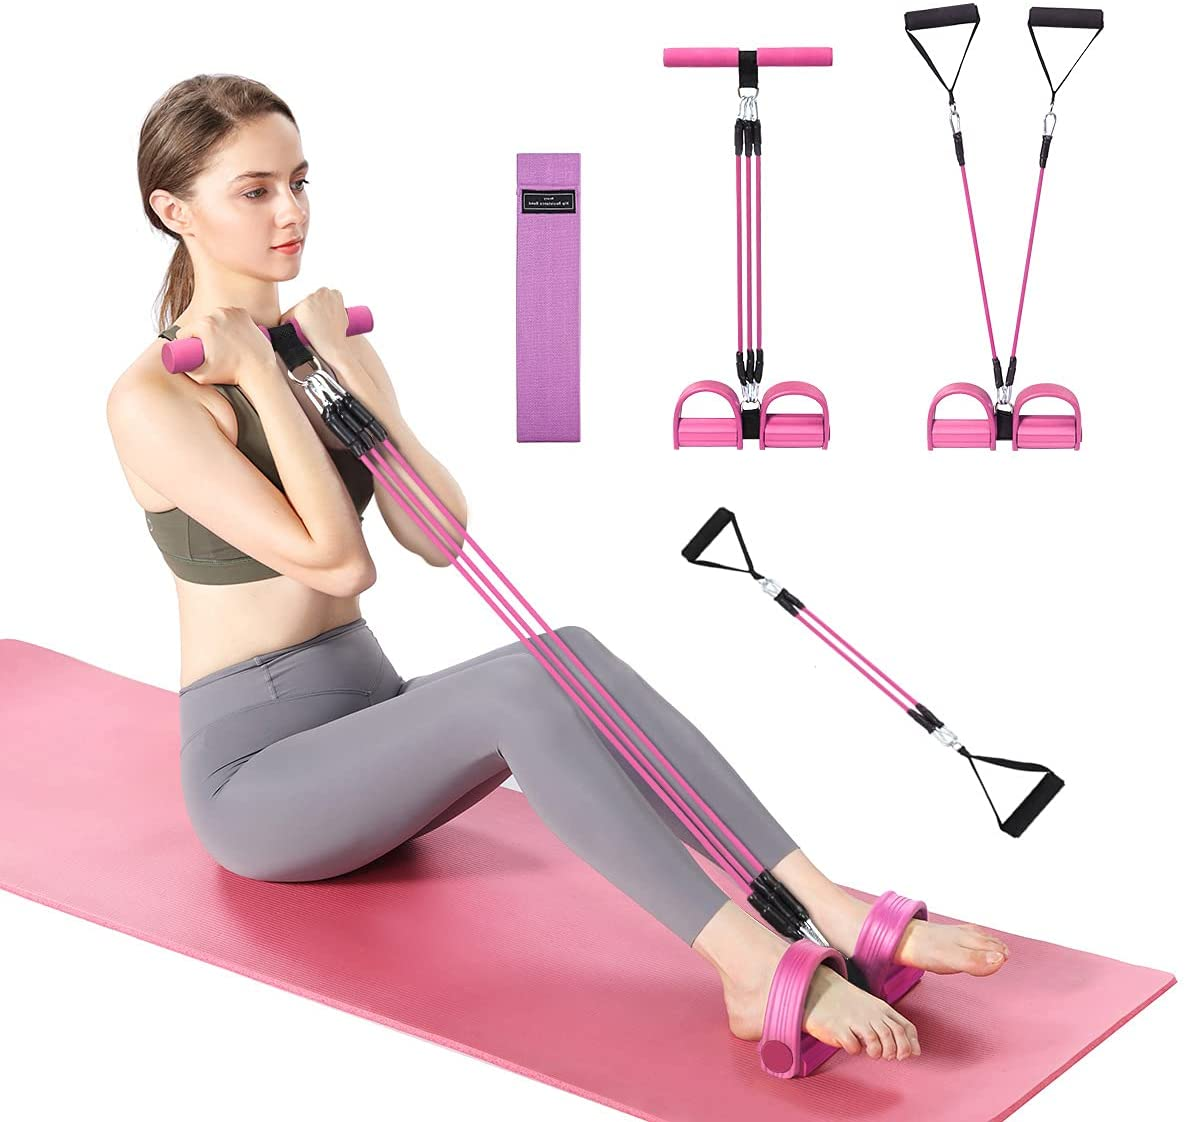 Burn Excess Fat, Arm Exercise Equipment, Hip Anti-Skid Resistance Bands Workout, Pedal Resistance Band, Abdominal Exercise Equipment, Tensile Exercise Bands, Exercise Equipment for Home Workouts